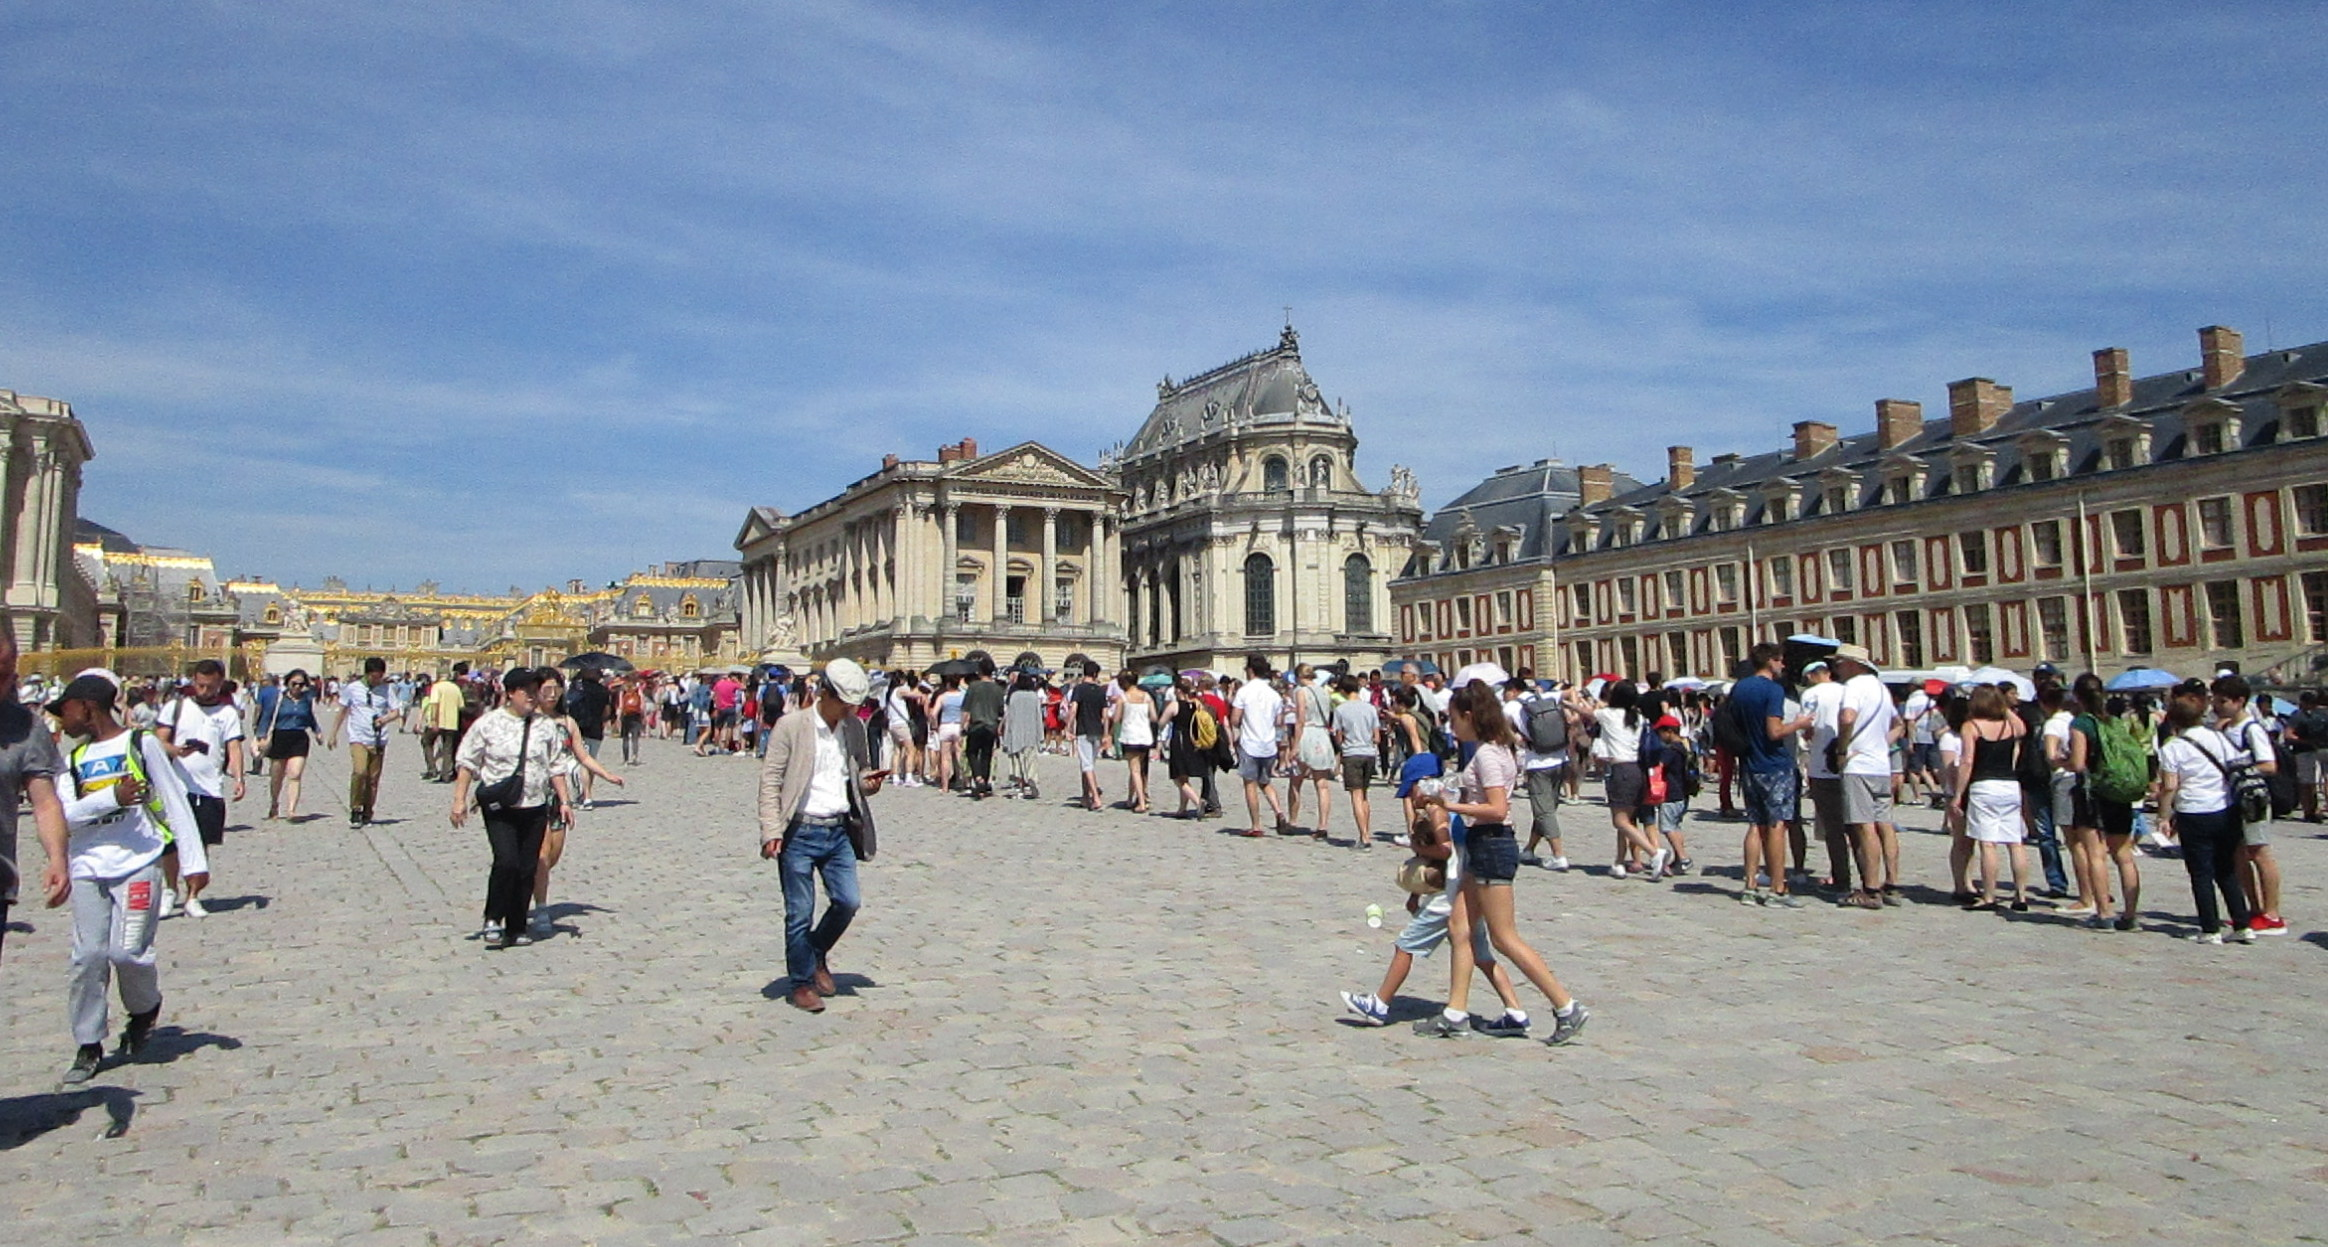 Queues in front of the entrance gate of Versailles Palace